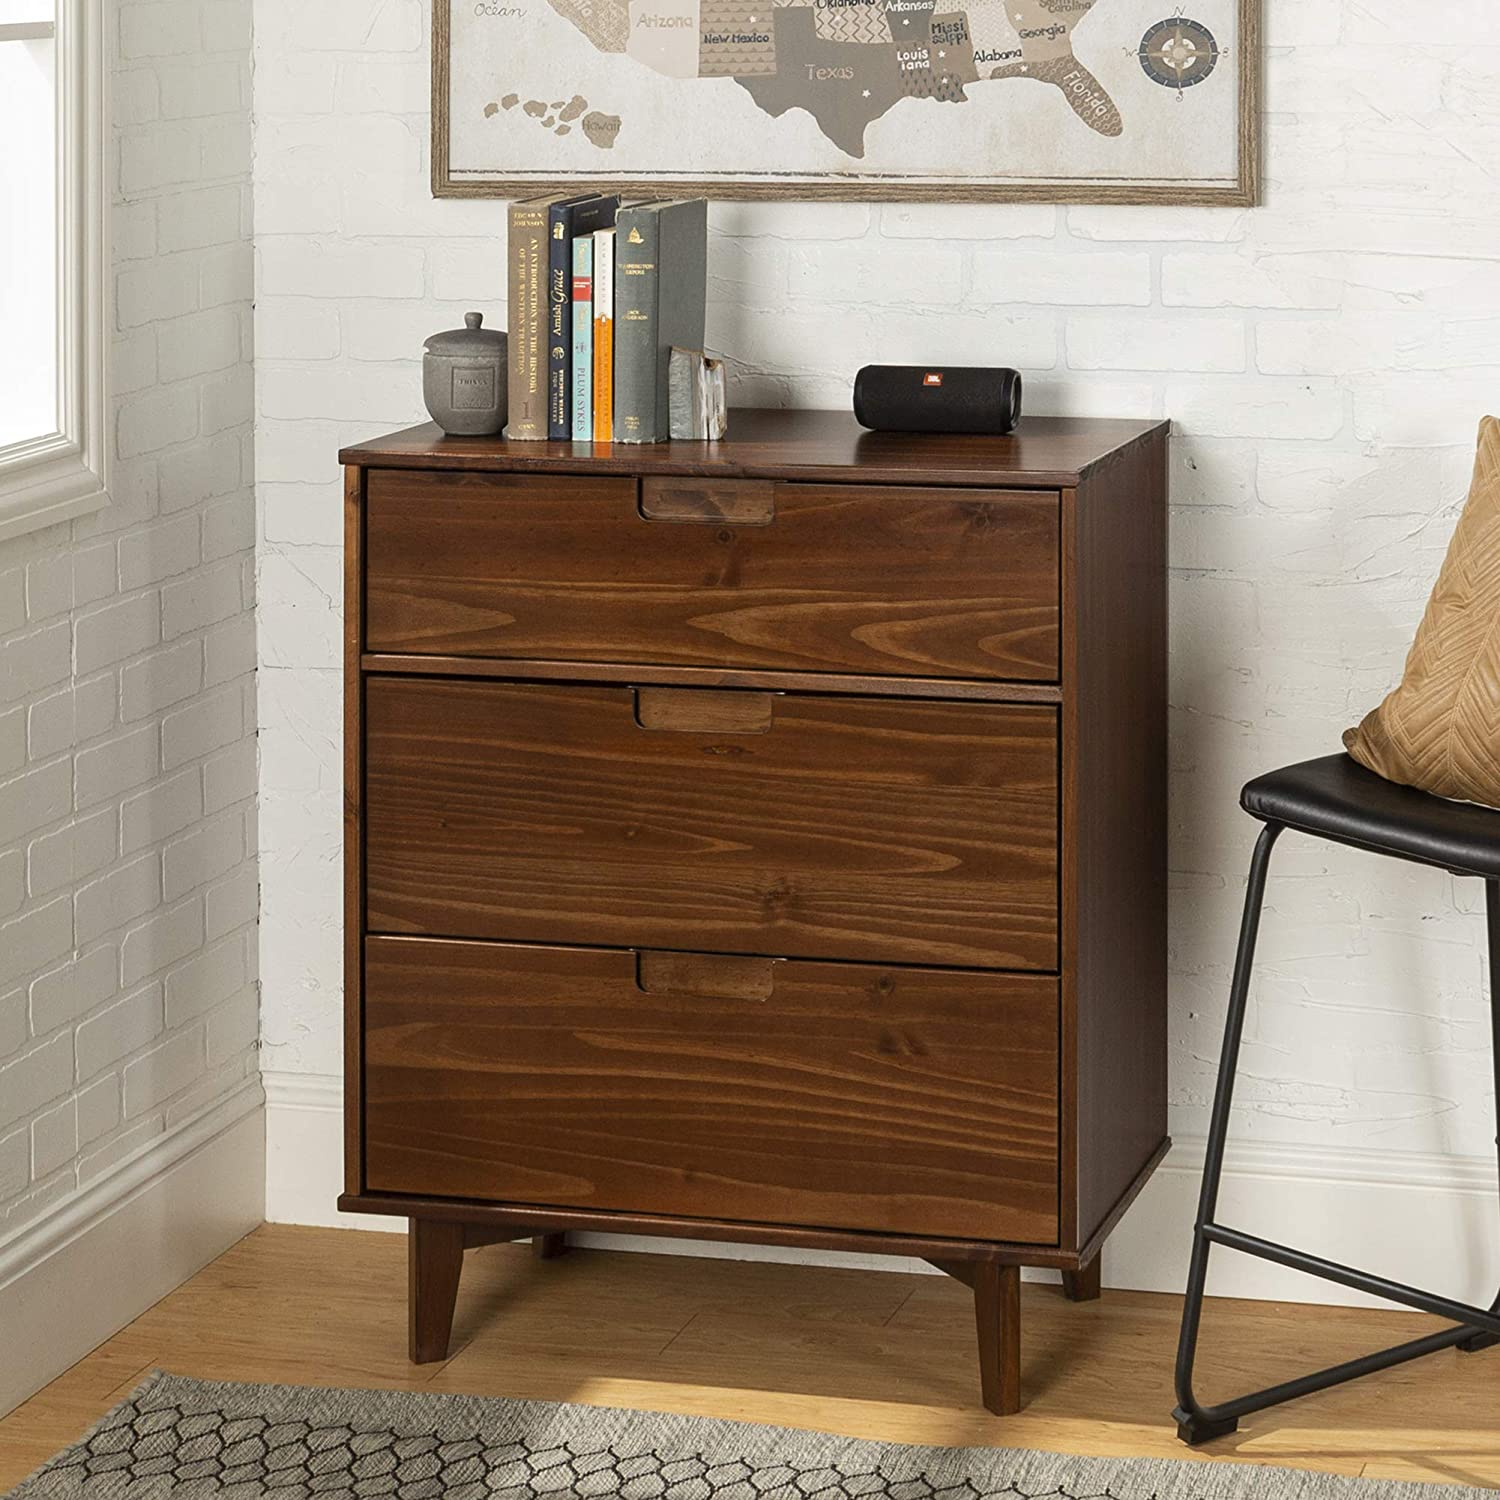 WE Furniture 3 Drawer Mid Century Modern Wood Dresser Bedroom Storage, Walnut